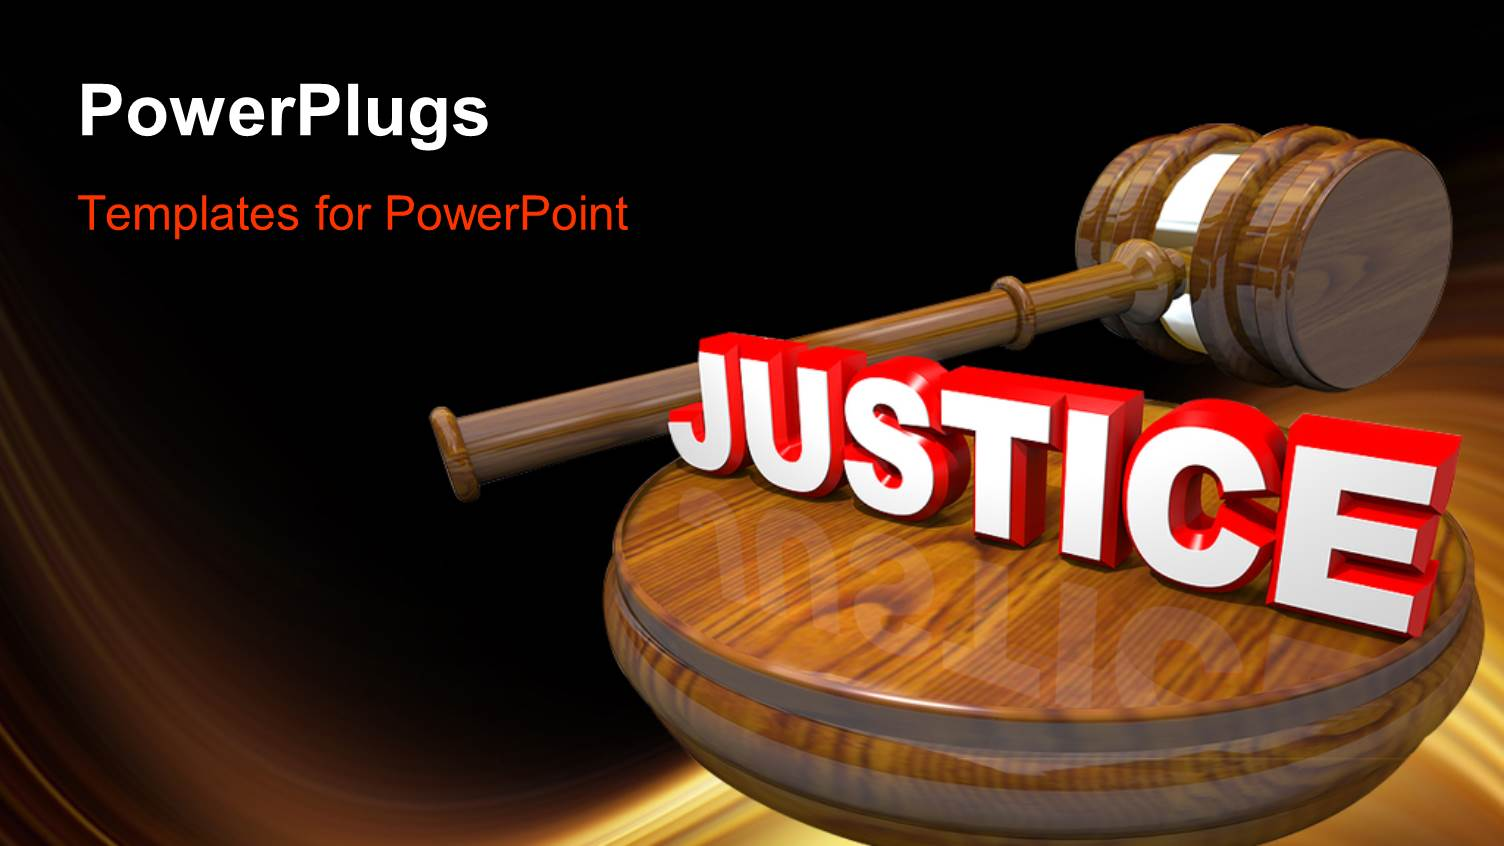 Top justice powerpoint templates backgrounds slides and ppt themes colorful slide deck having 3d wooden judges gavel and 3d white and red justice word atop template size toneelgroepblik Images